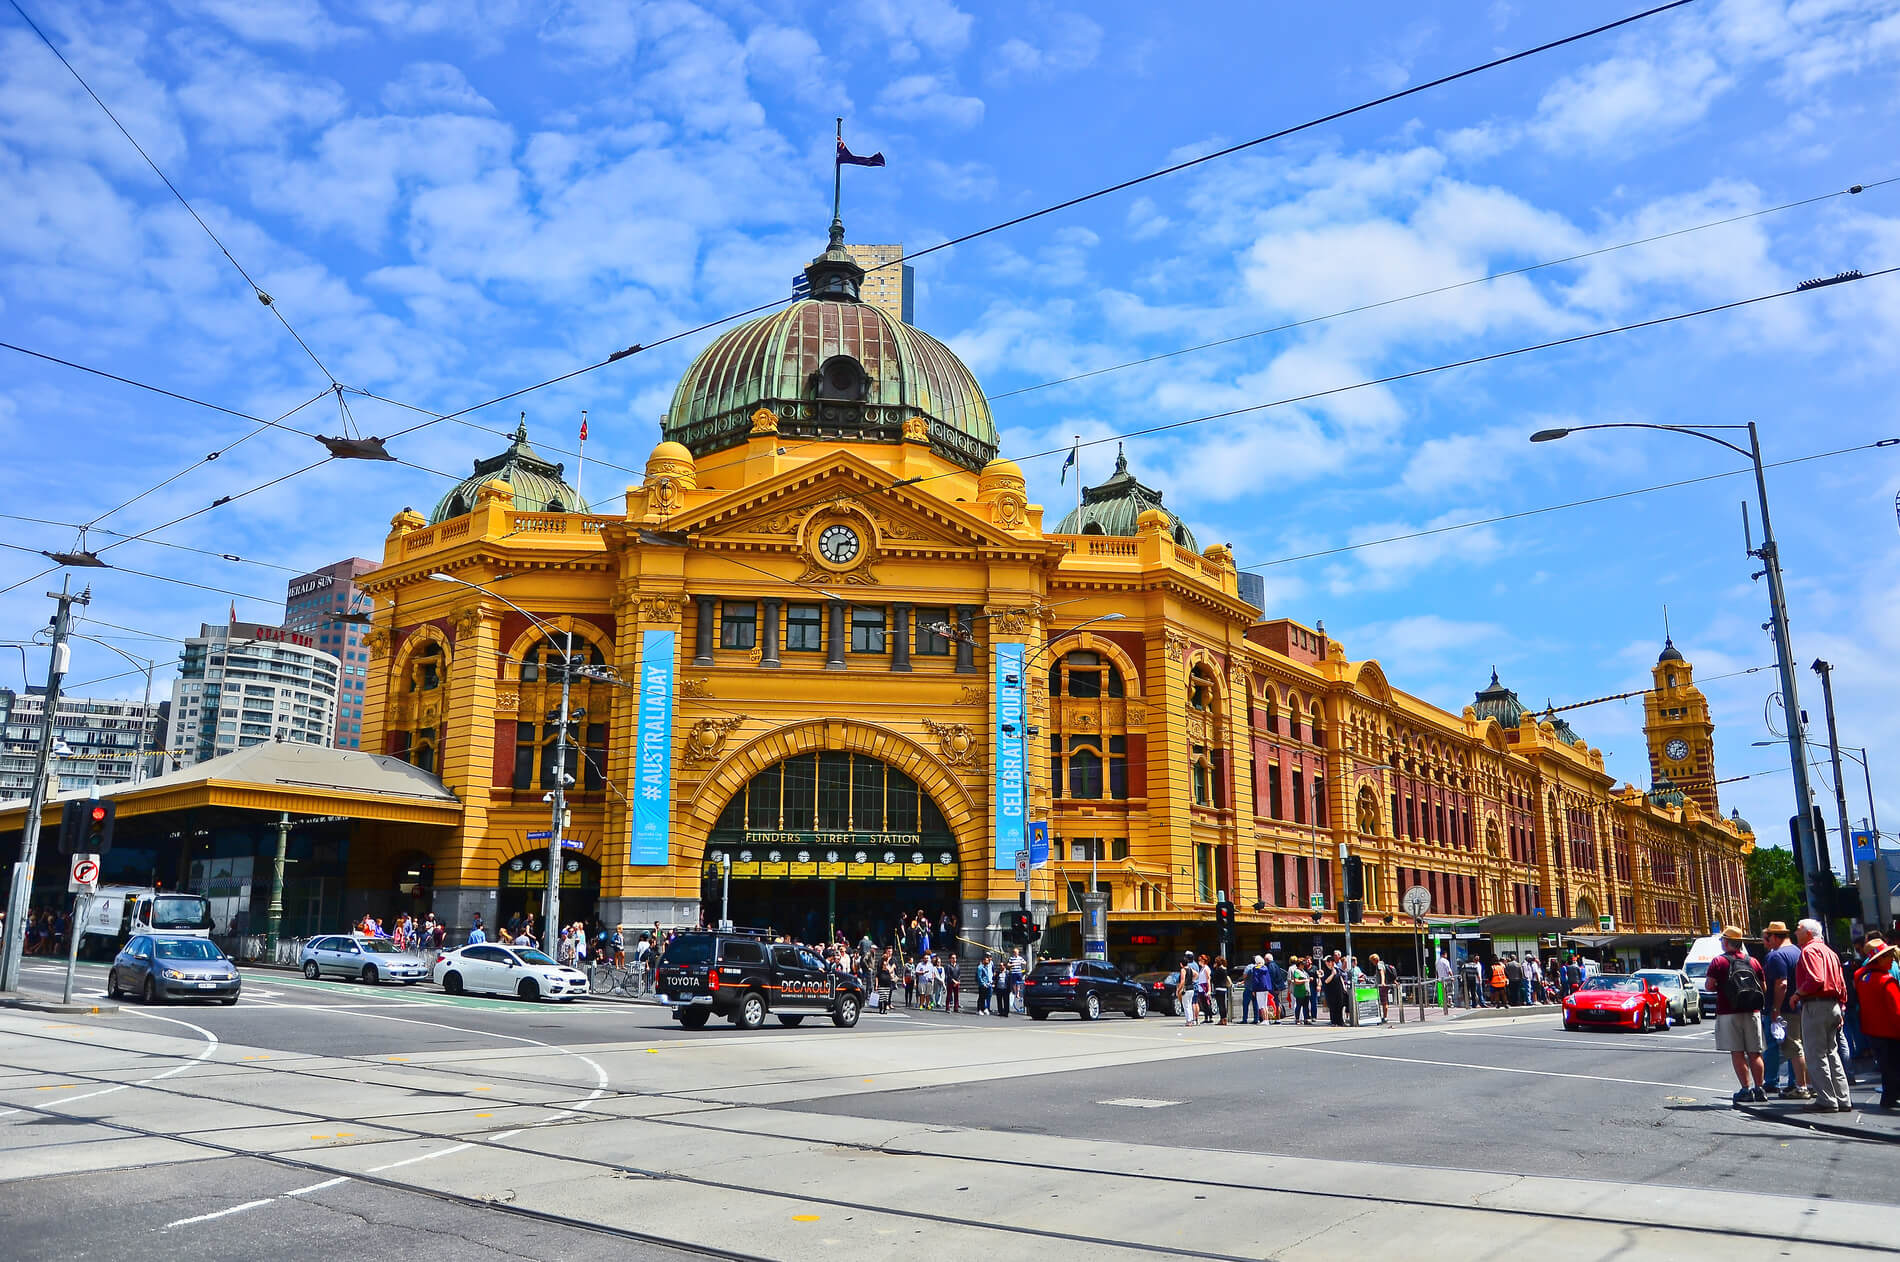 Cars and passengers in front of Flinders Street Station